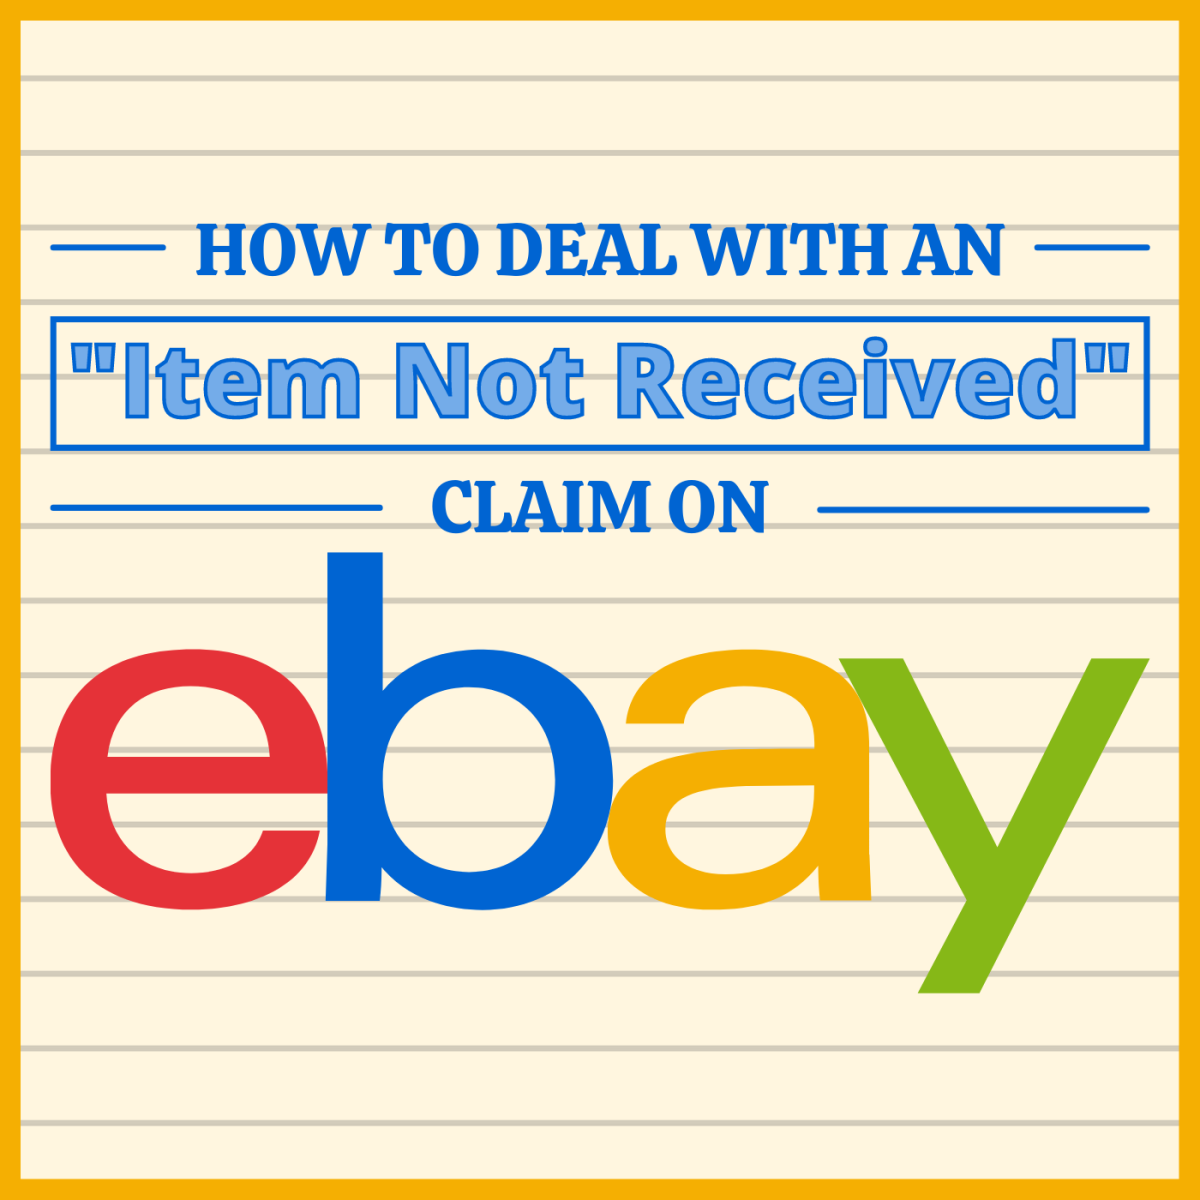 If an eBay buyer claims they didn't receive an item you sent them, you may not owe them a refund.